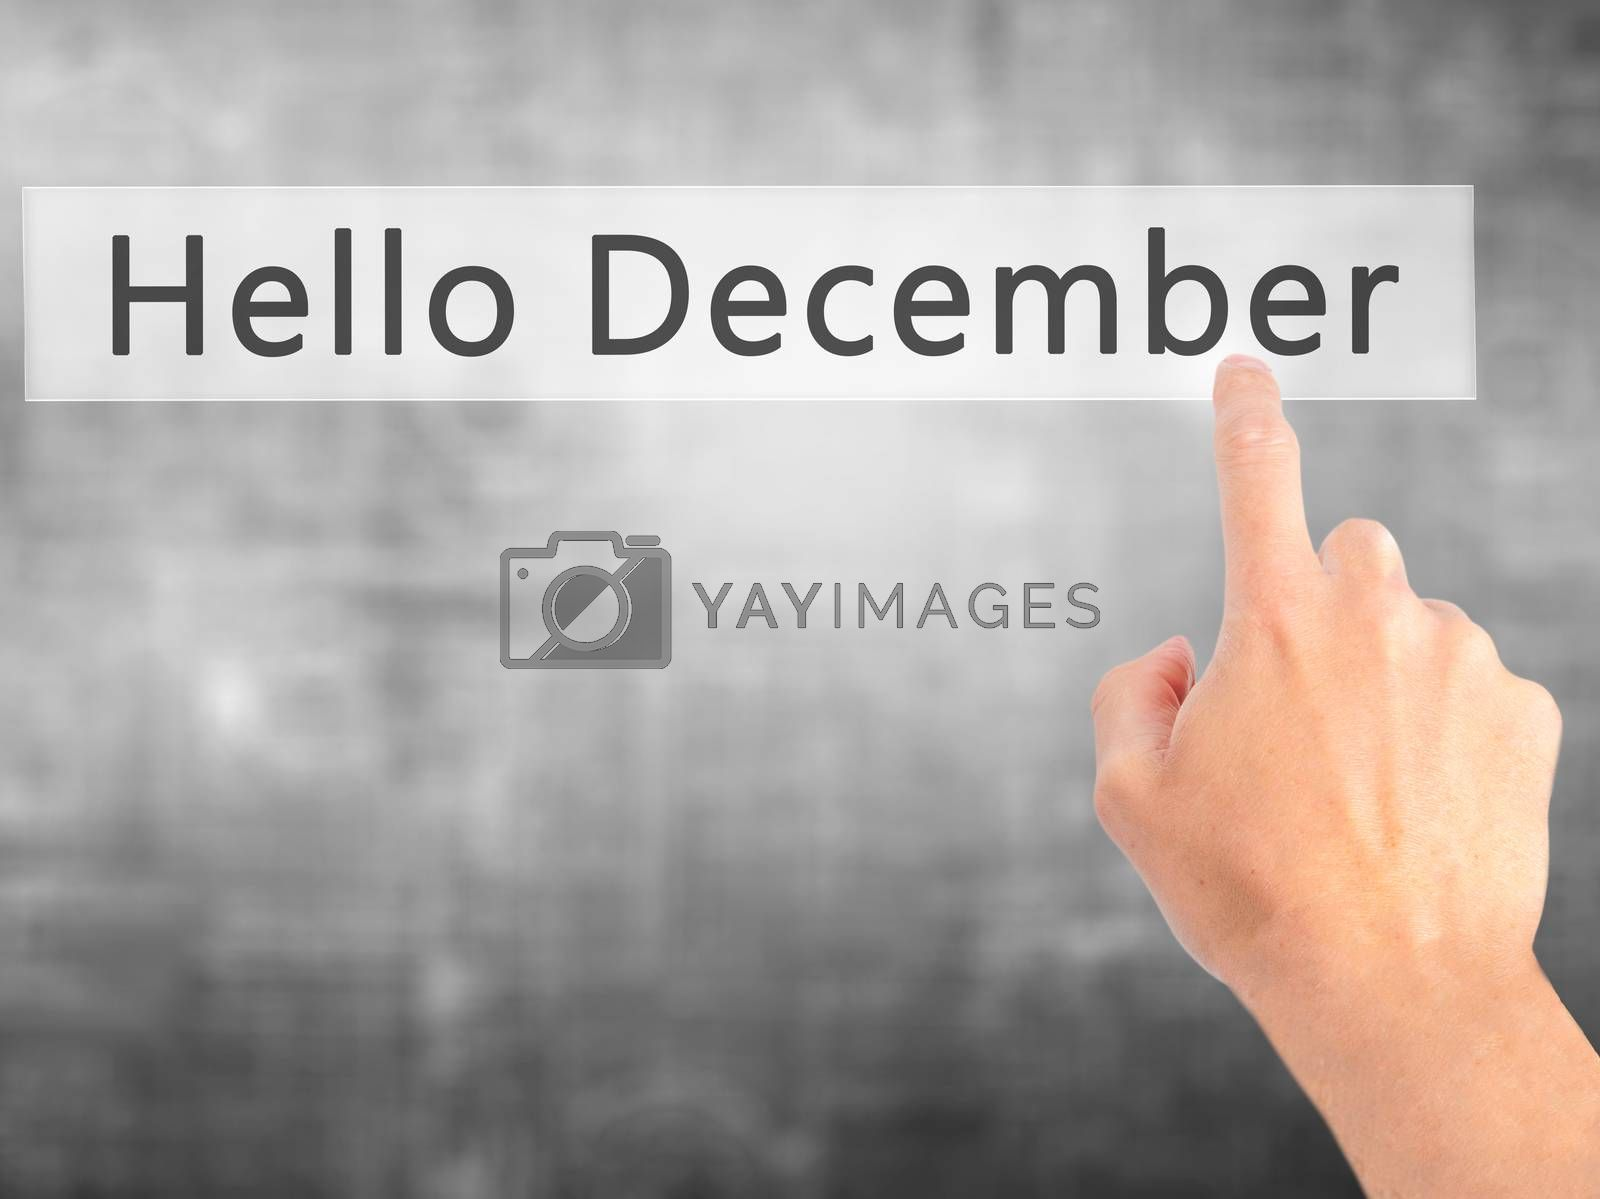 Hello December - Hand pressing a button on blurred background co by jackald